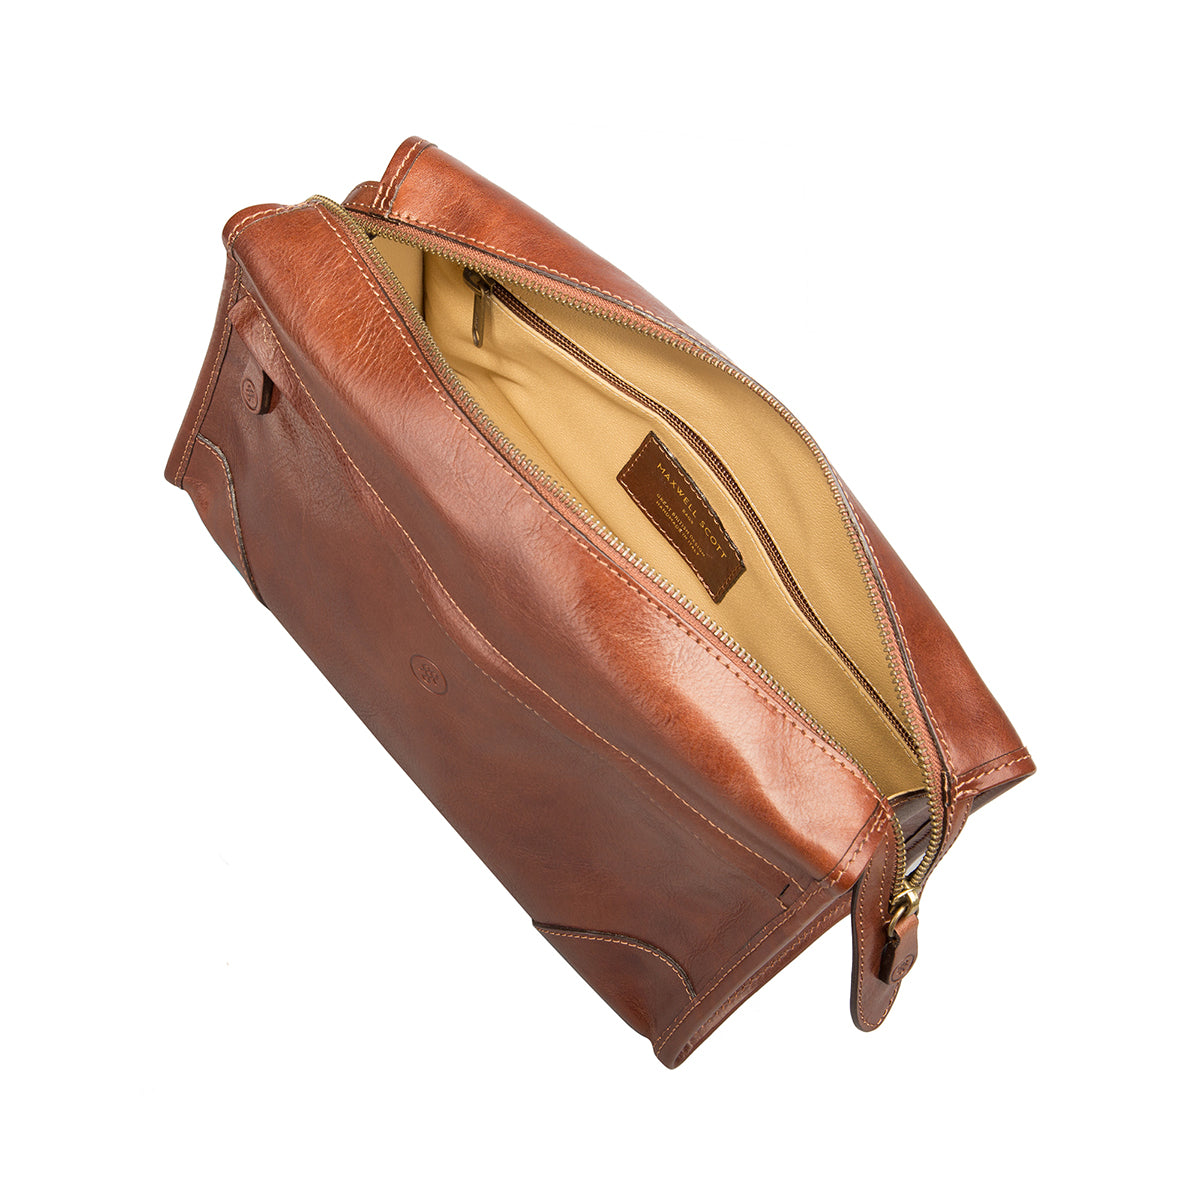 Image 5 of the 'Tanta' Chestnut Veg-Tanned Leather Wash Bag